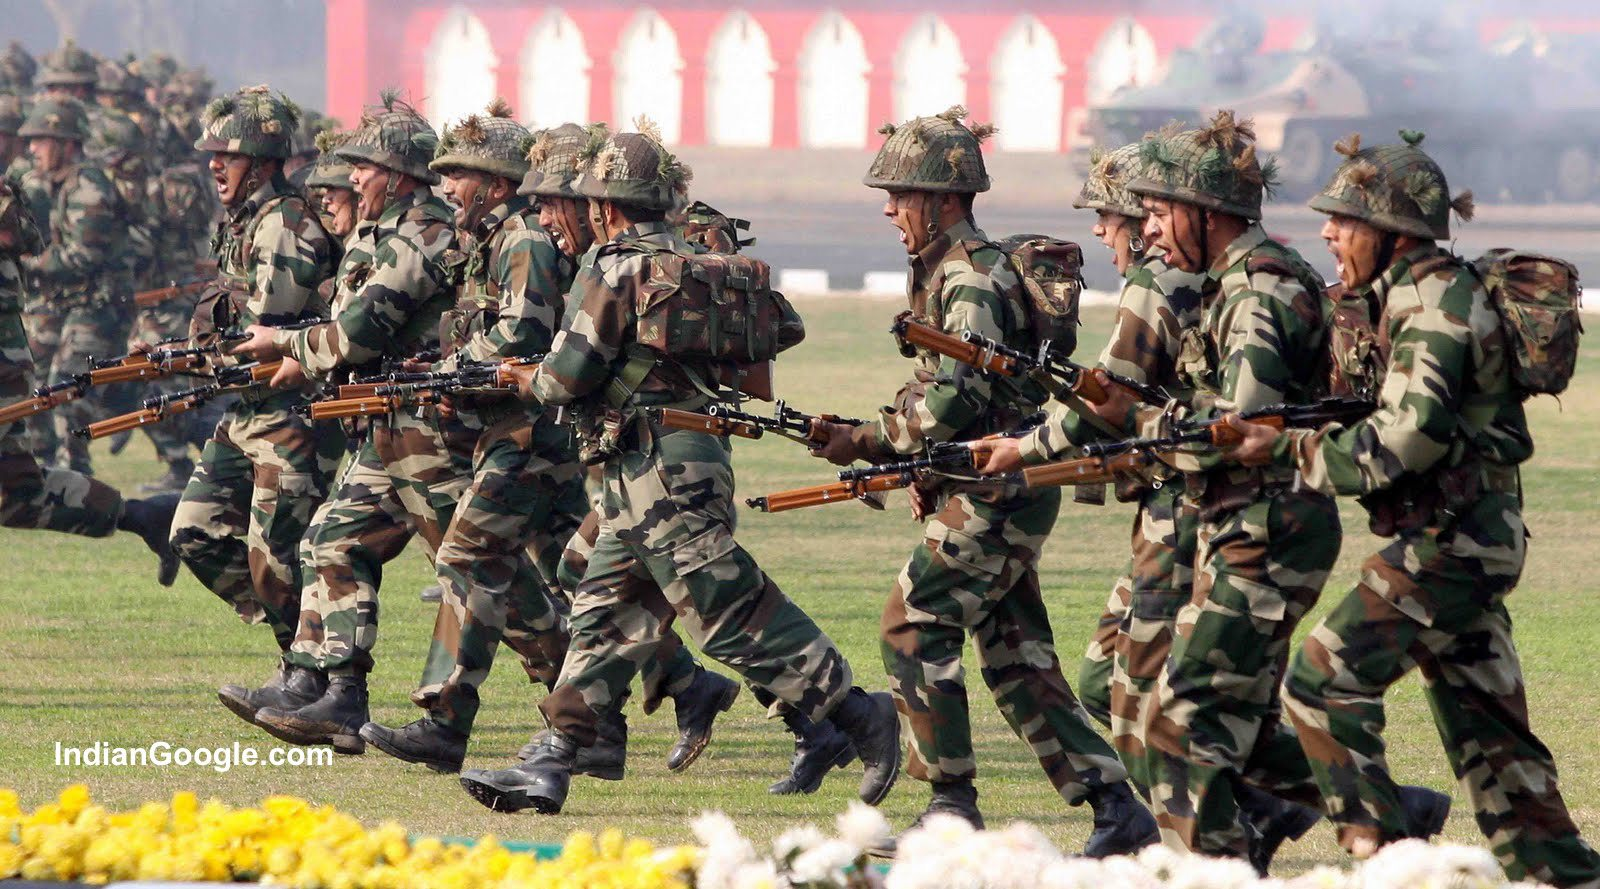 Hd wallpaper indian army - Indian Army Images